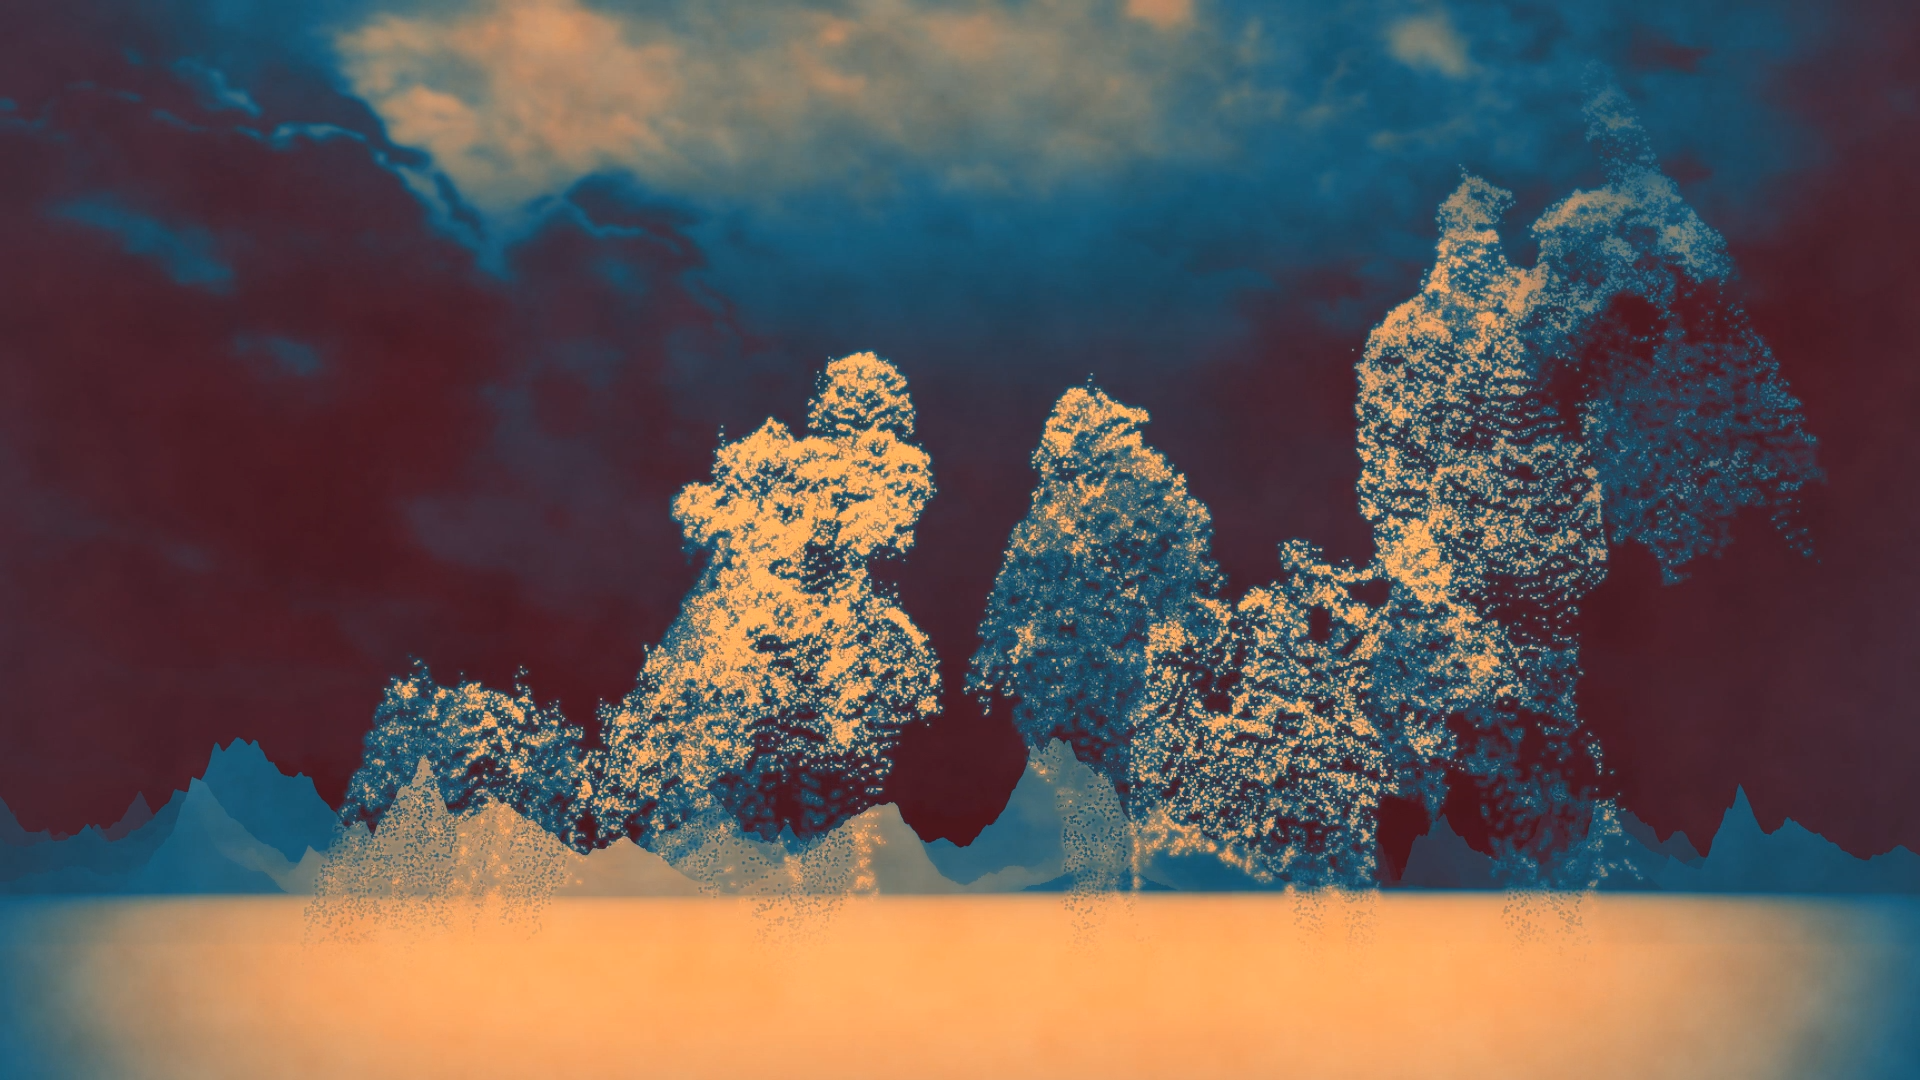 Scene+POINT+CLOUDS_1130.png